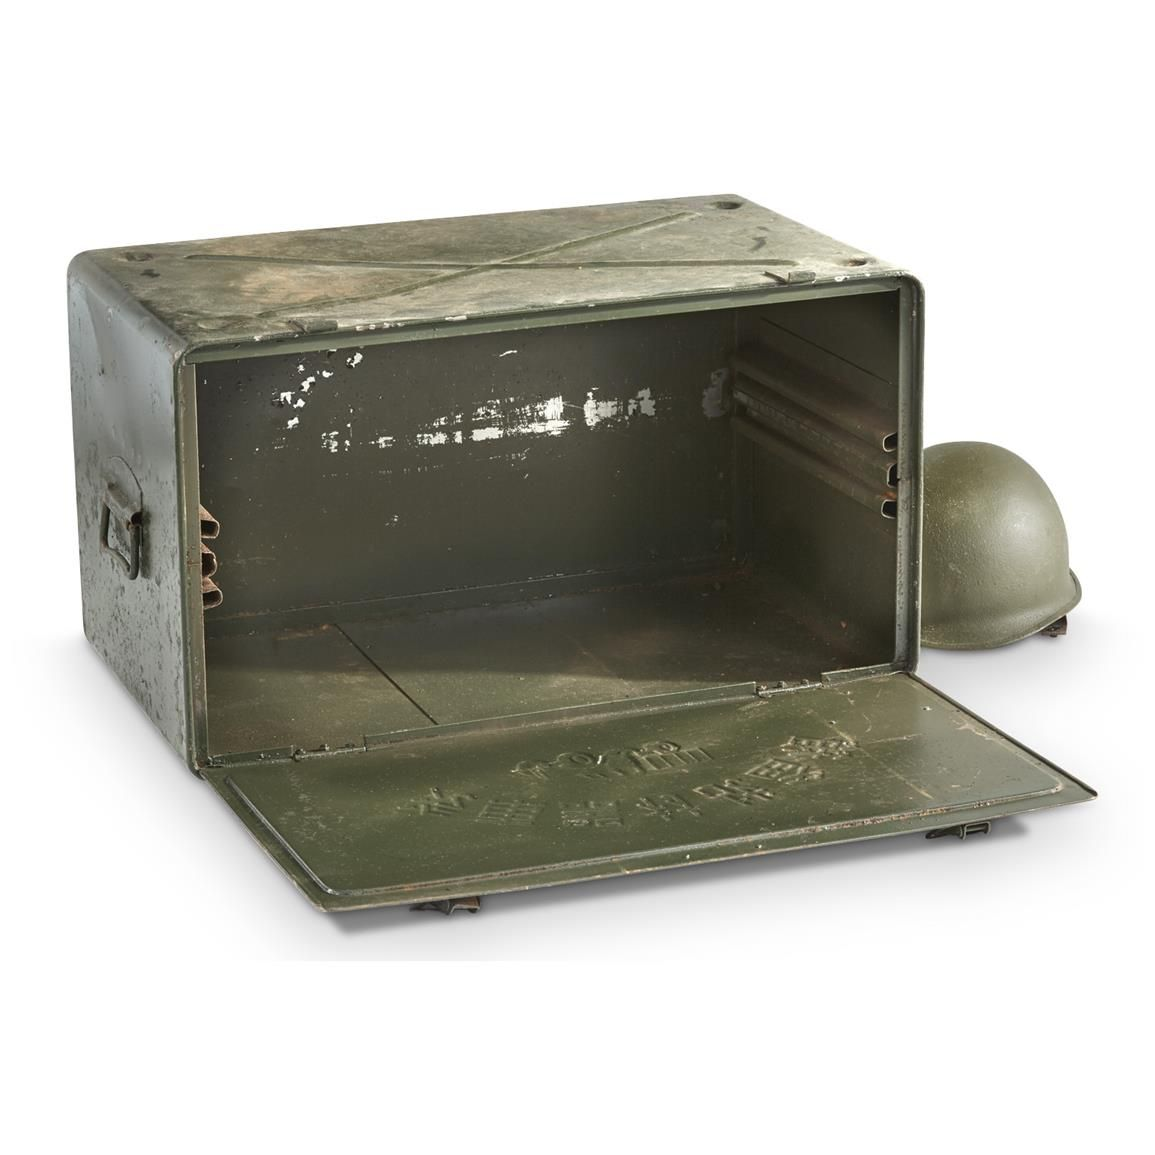 Chinese Military Surplus Metal Truck Storage Box 3688027c74c